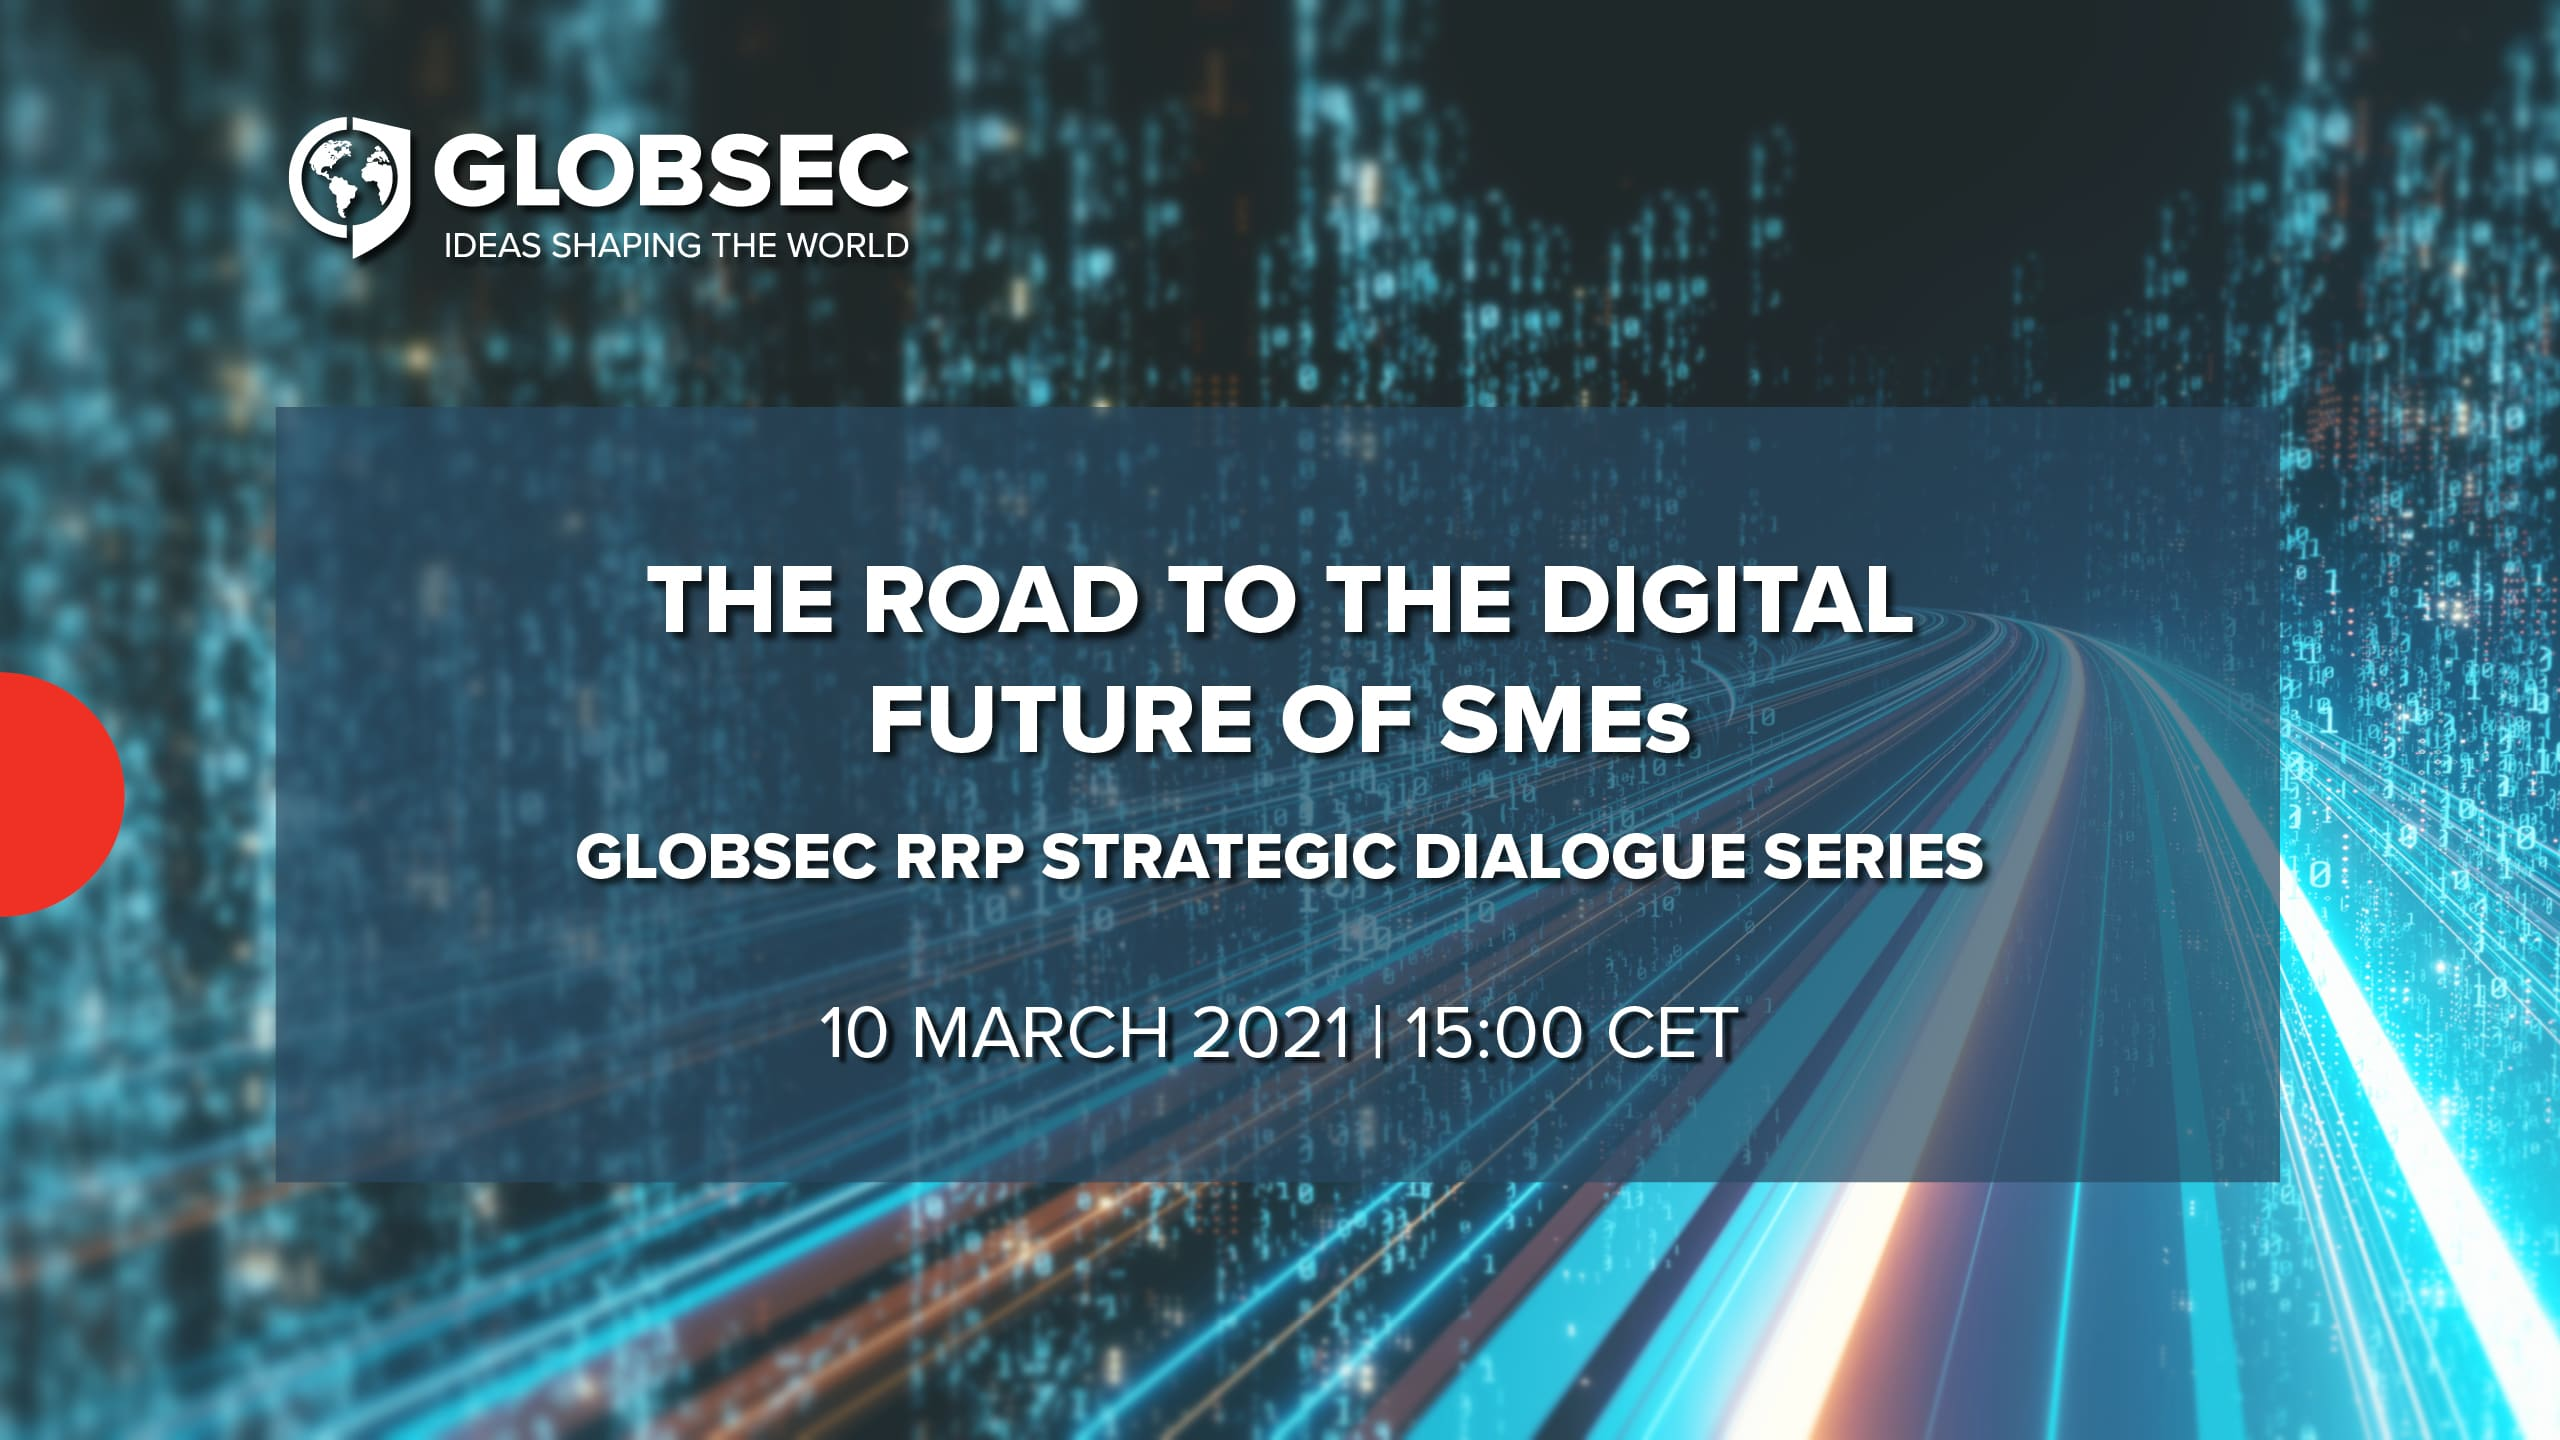 The Road to the Digital Future of SMEs